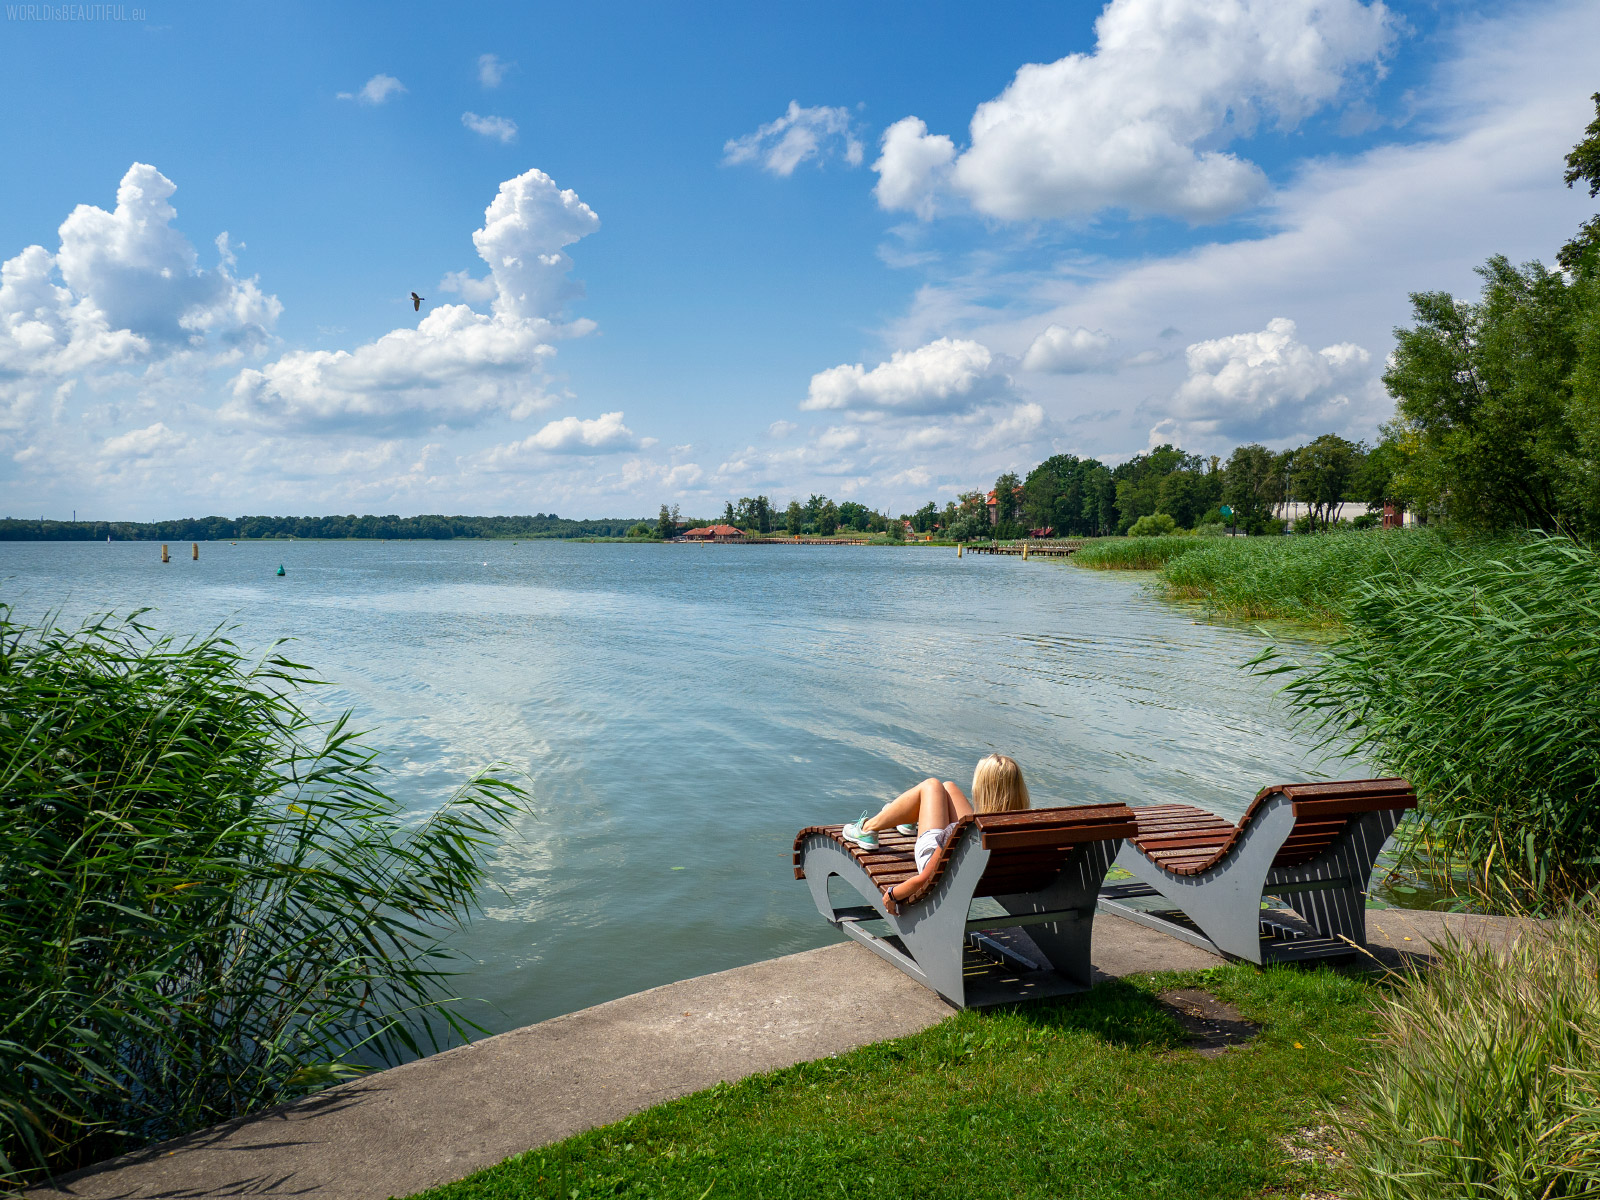 Relax at the Drwęckie Lake